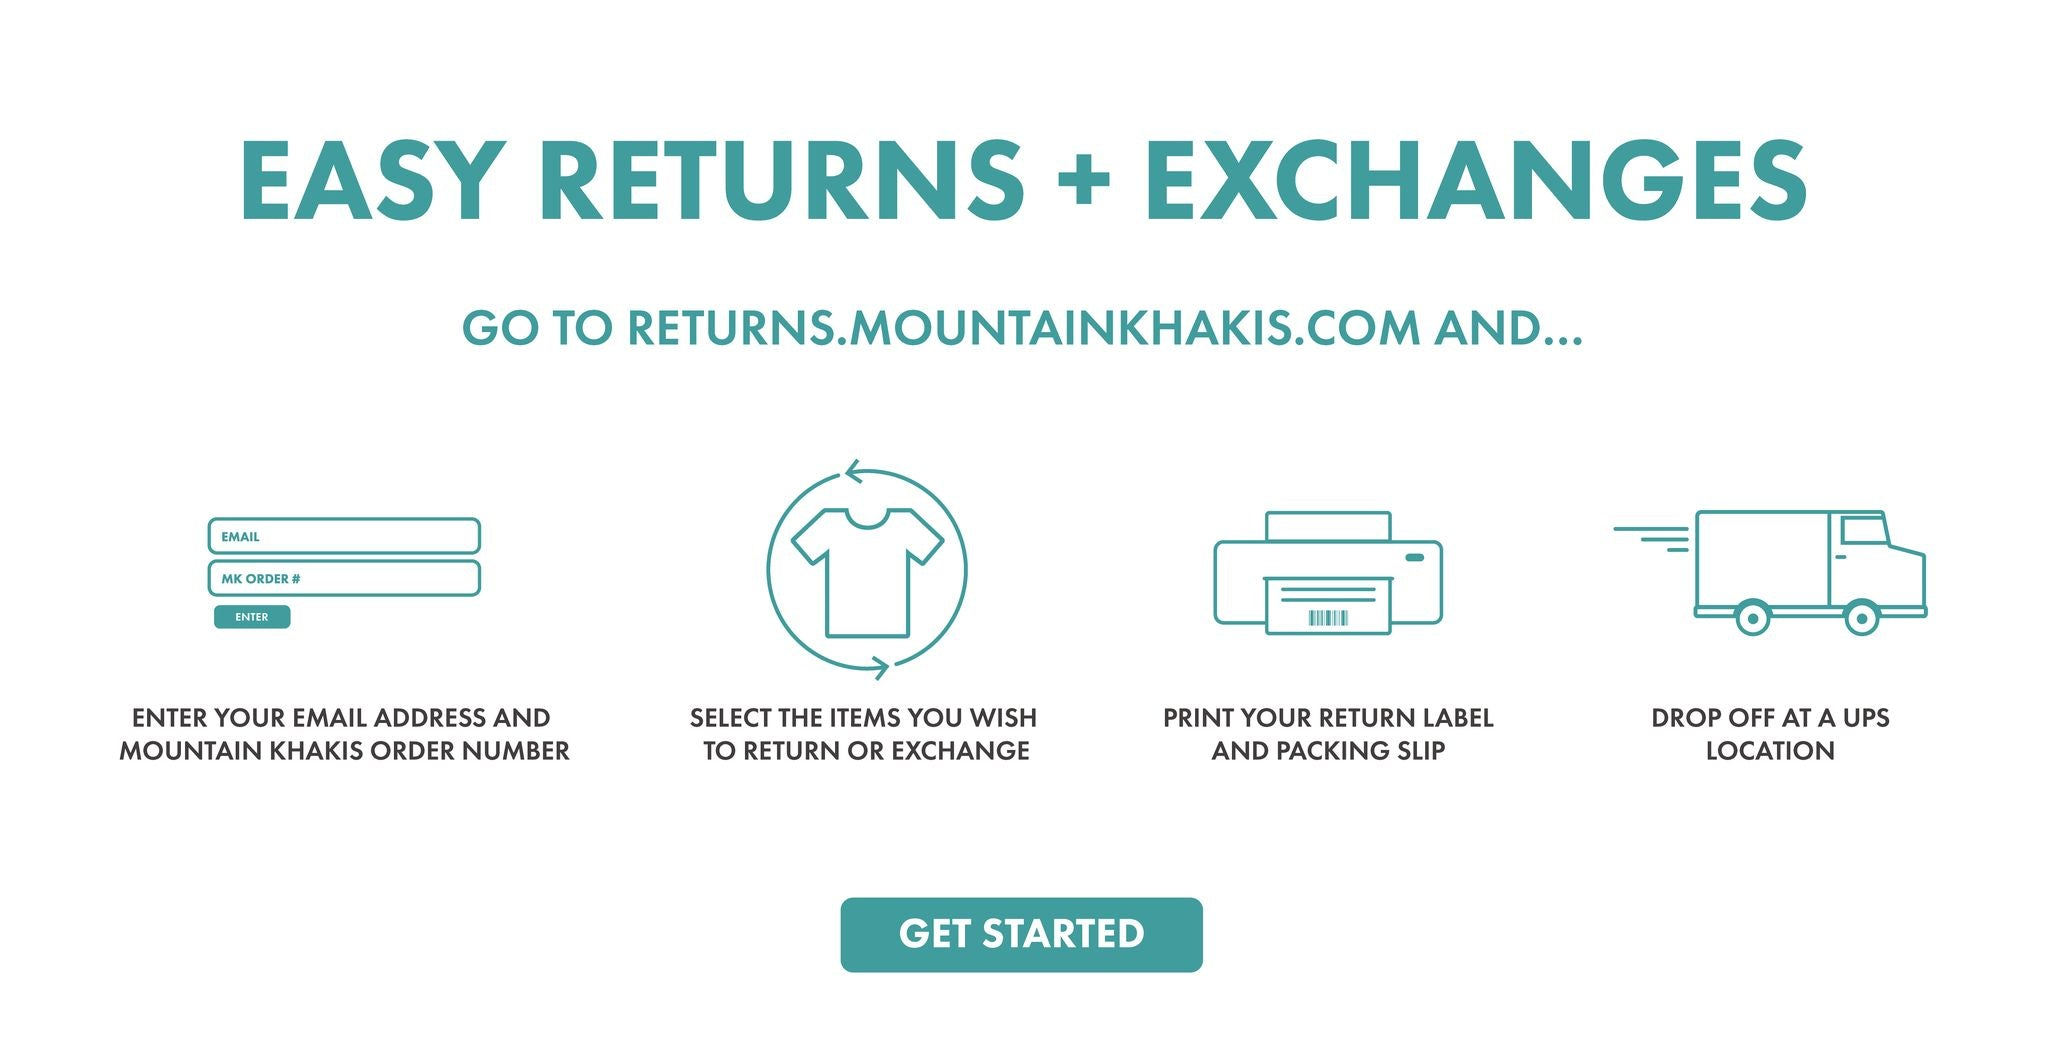 Mountain Khakis Returns And Exchanges